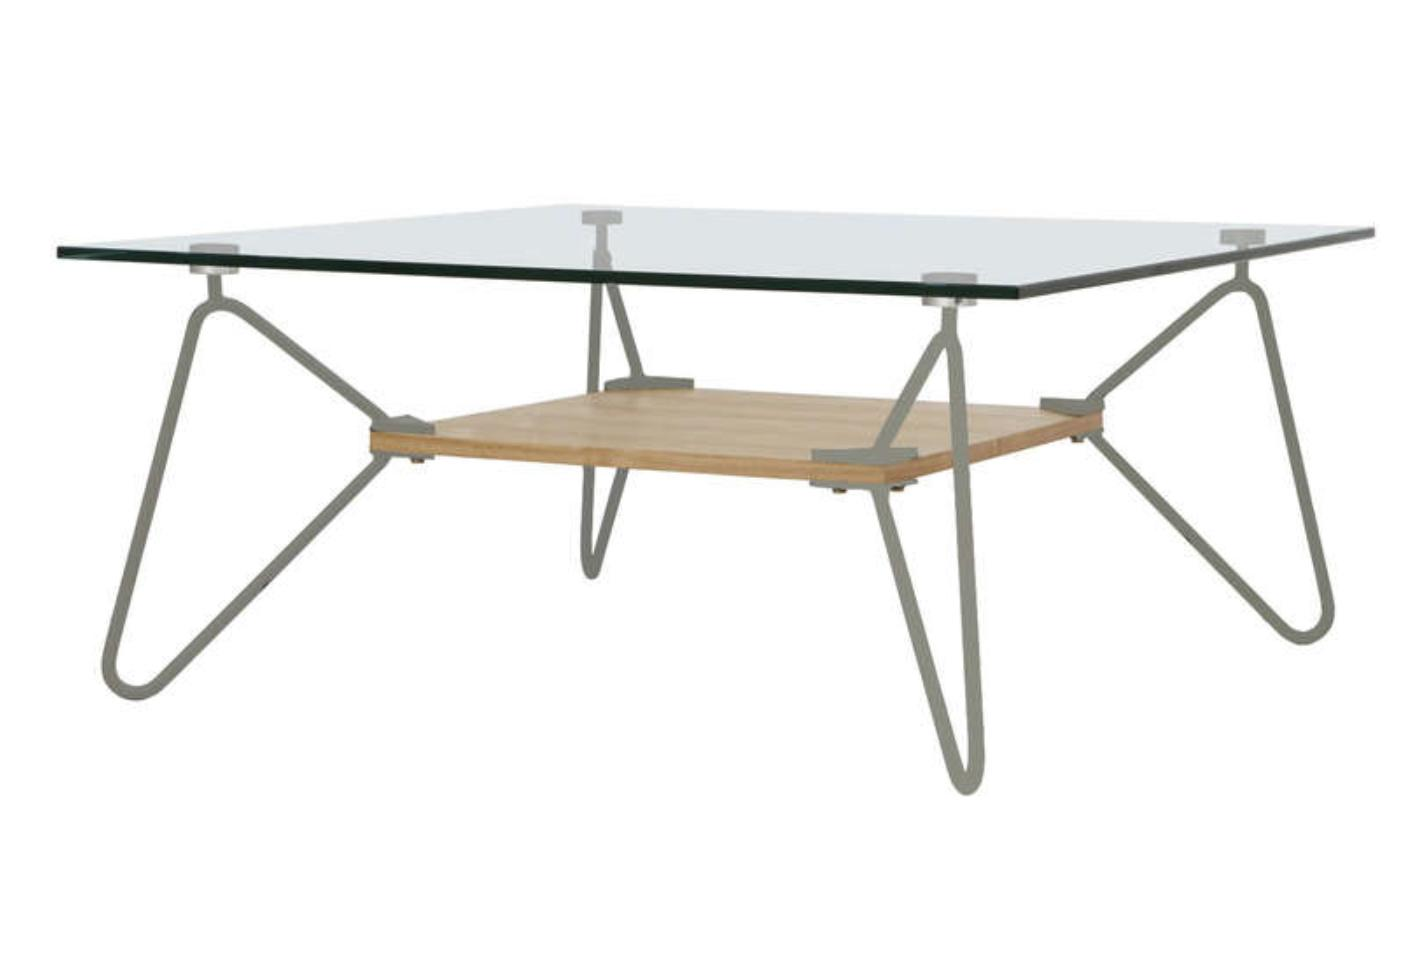 Table basse carr e verre et m tal gris mobus - Table basse carree bois gris ...